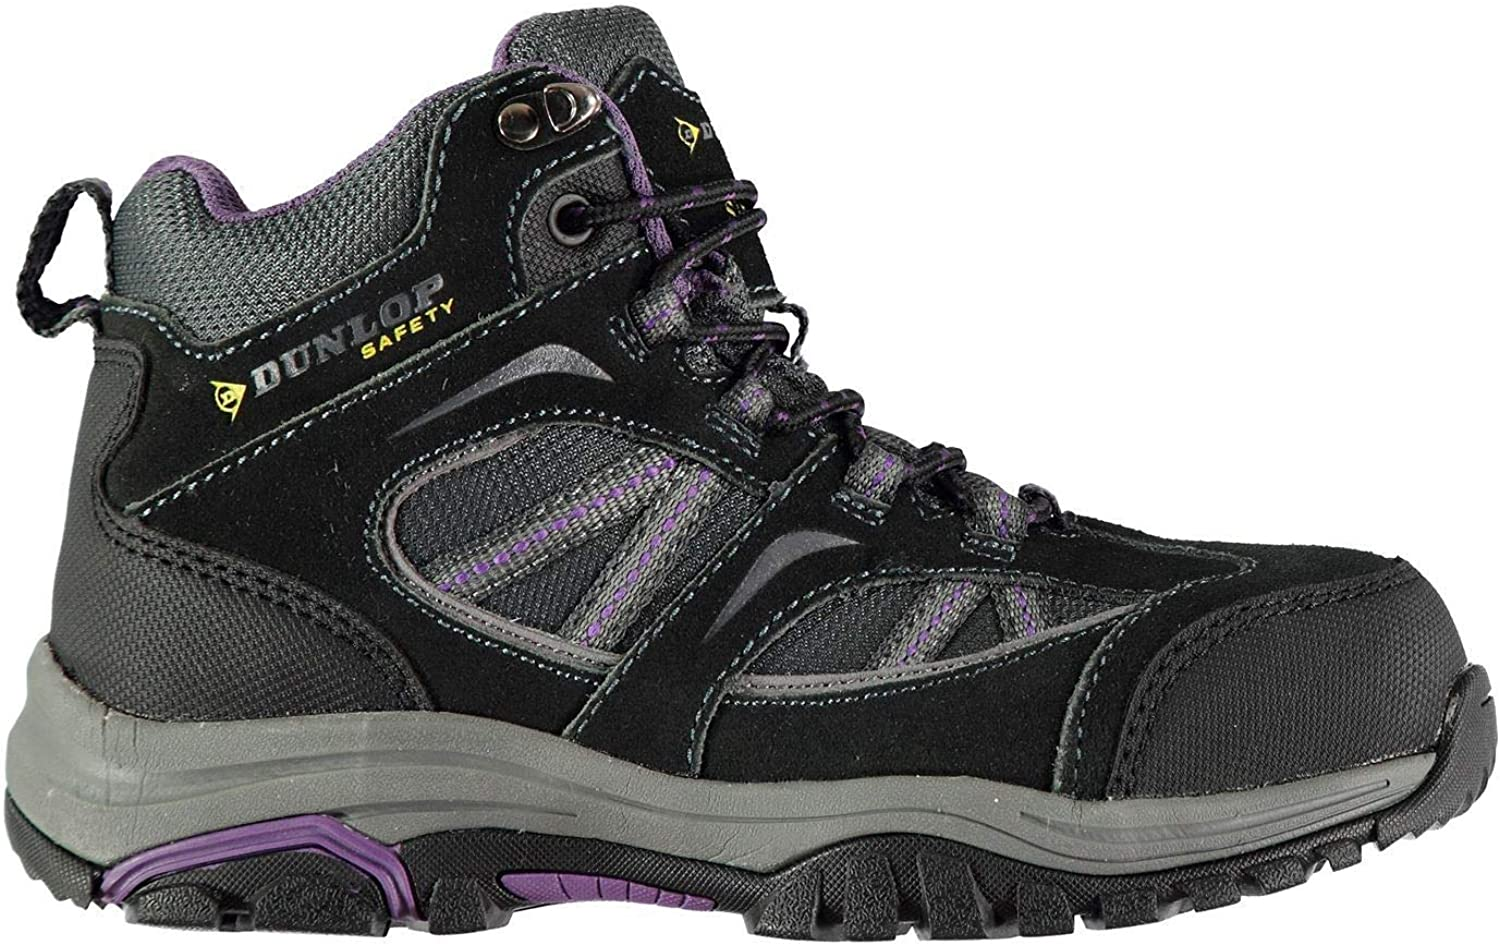 Official Brand Dunlop colorado Steel Toe Cap Safety Boots Womens Grey Purple Footwear shoes